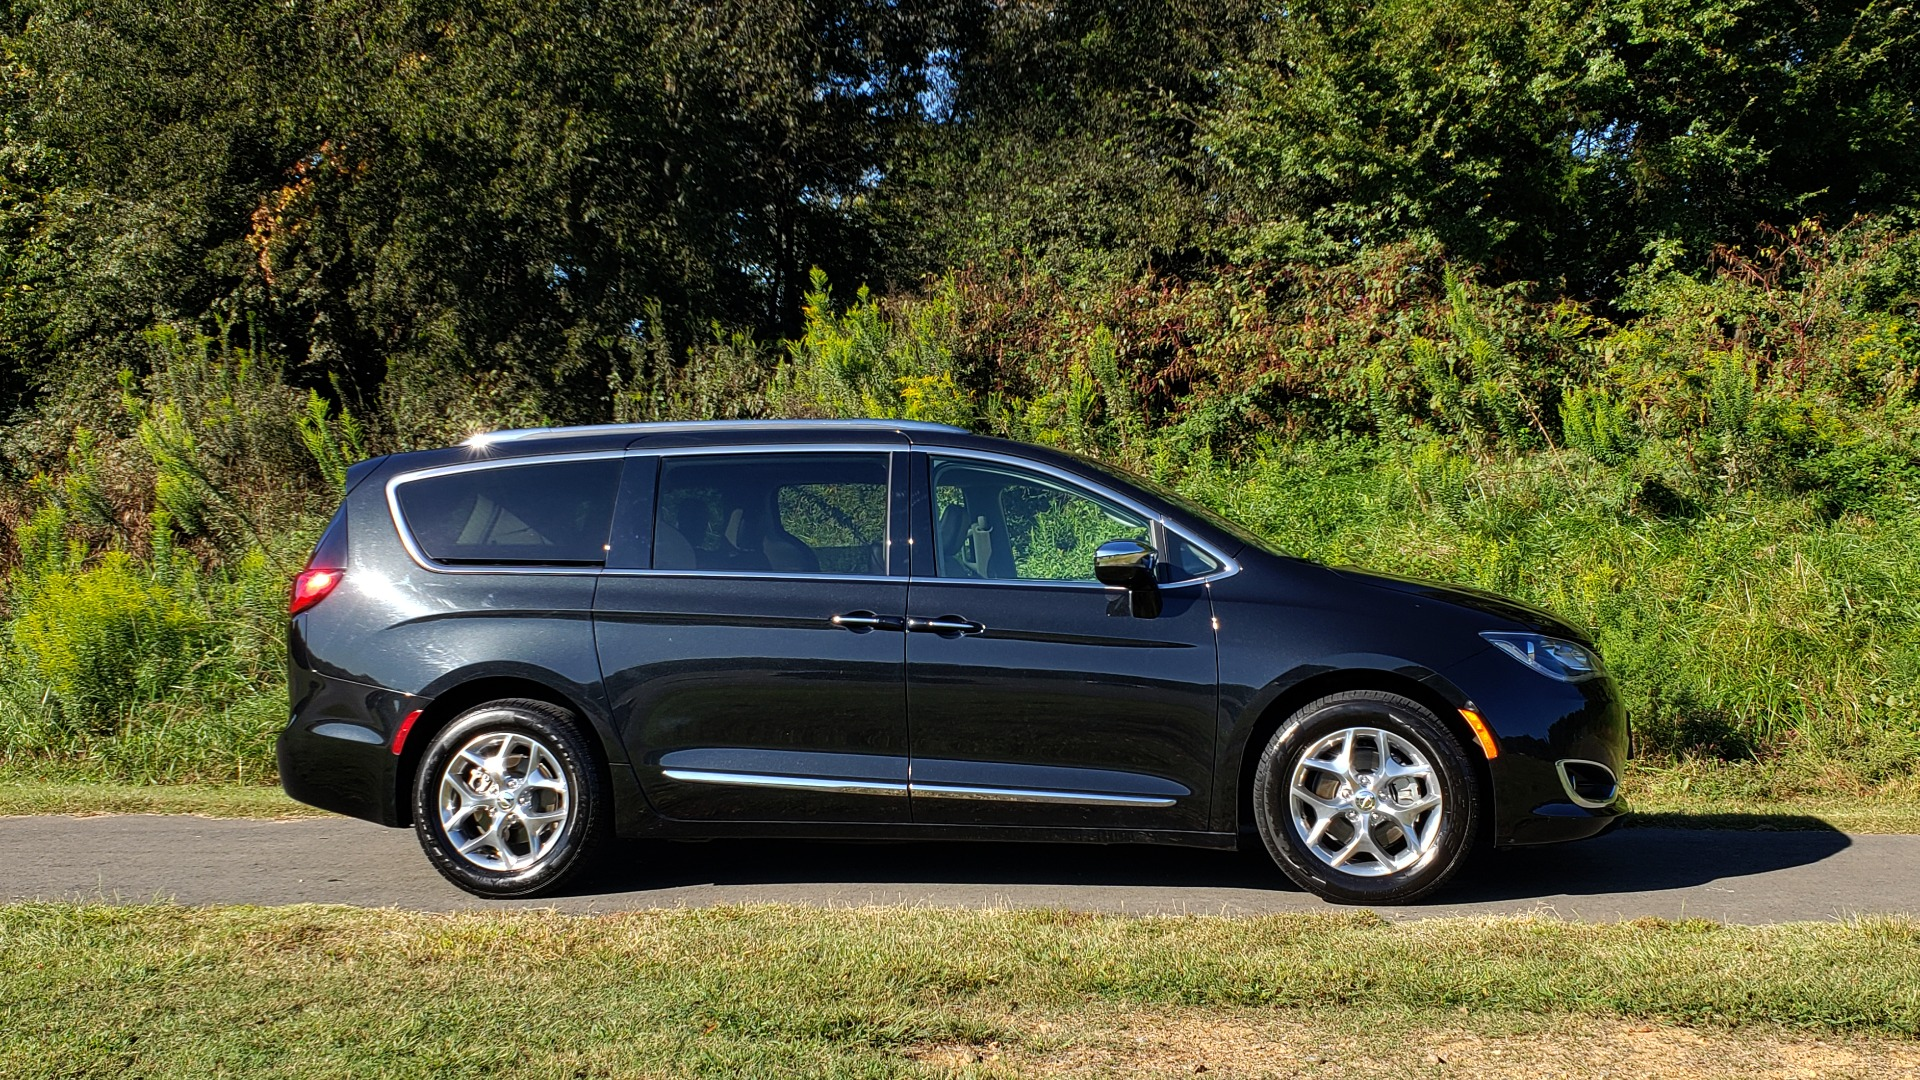 Used 2018 Chrysler PACIFICA LIMITED / 3.6L V6 / NAV / PANO-ROOF / 3-ROWS / REARVIEW for sale Sold at Formula Imports in Charlotte NC 28227 4